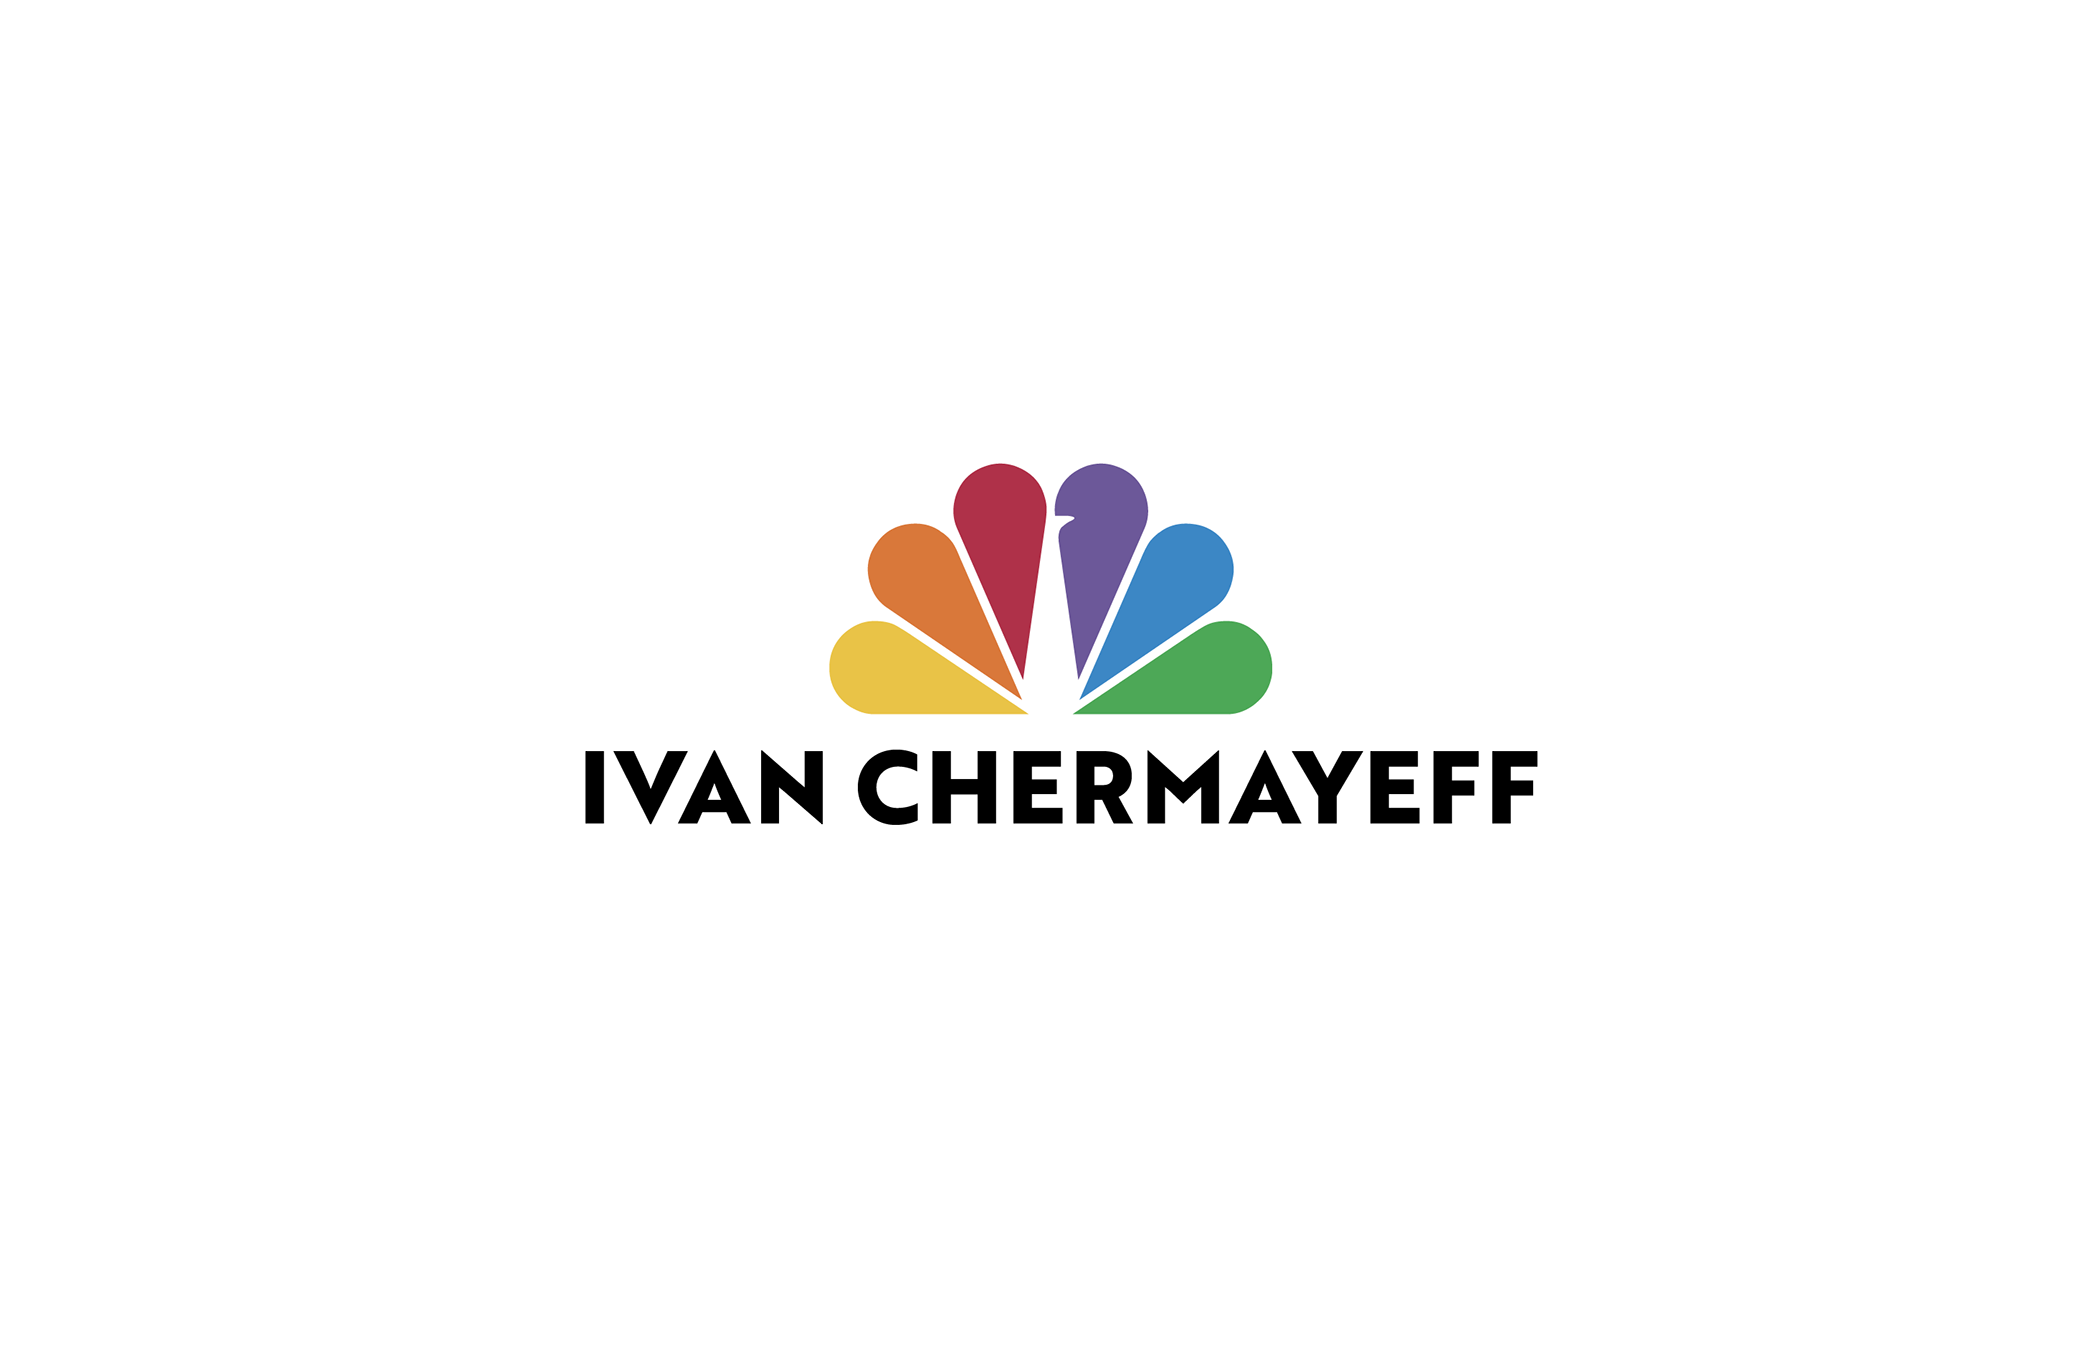 Ivan Chermayeff - Designer of the NBC logo